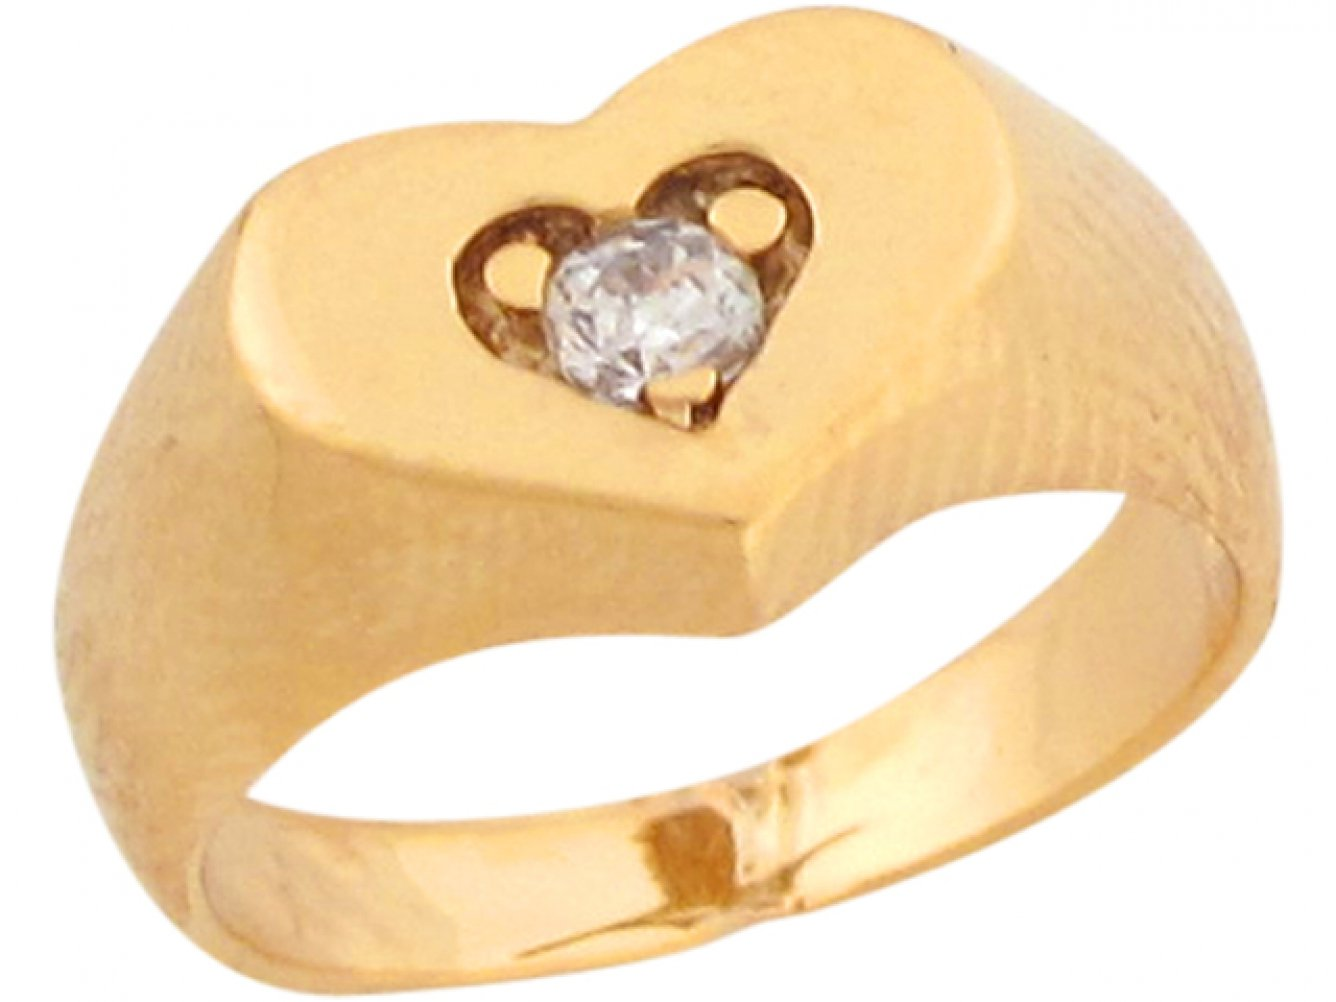 10k Real Yellow Gold White CZ Heart Shaped Cute Baby Girls Ring by Jewelry Liquidation (Image #2)